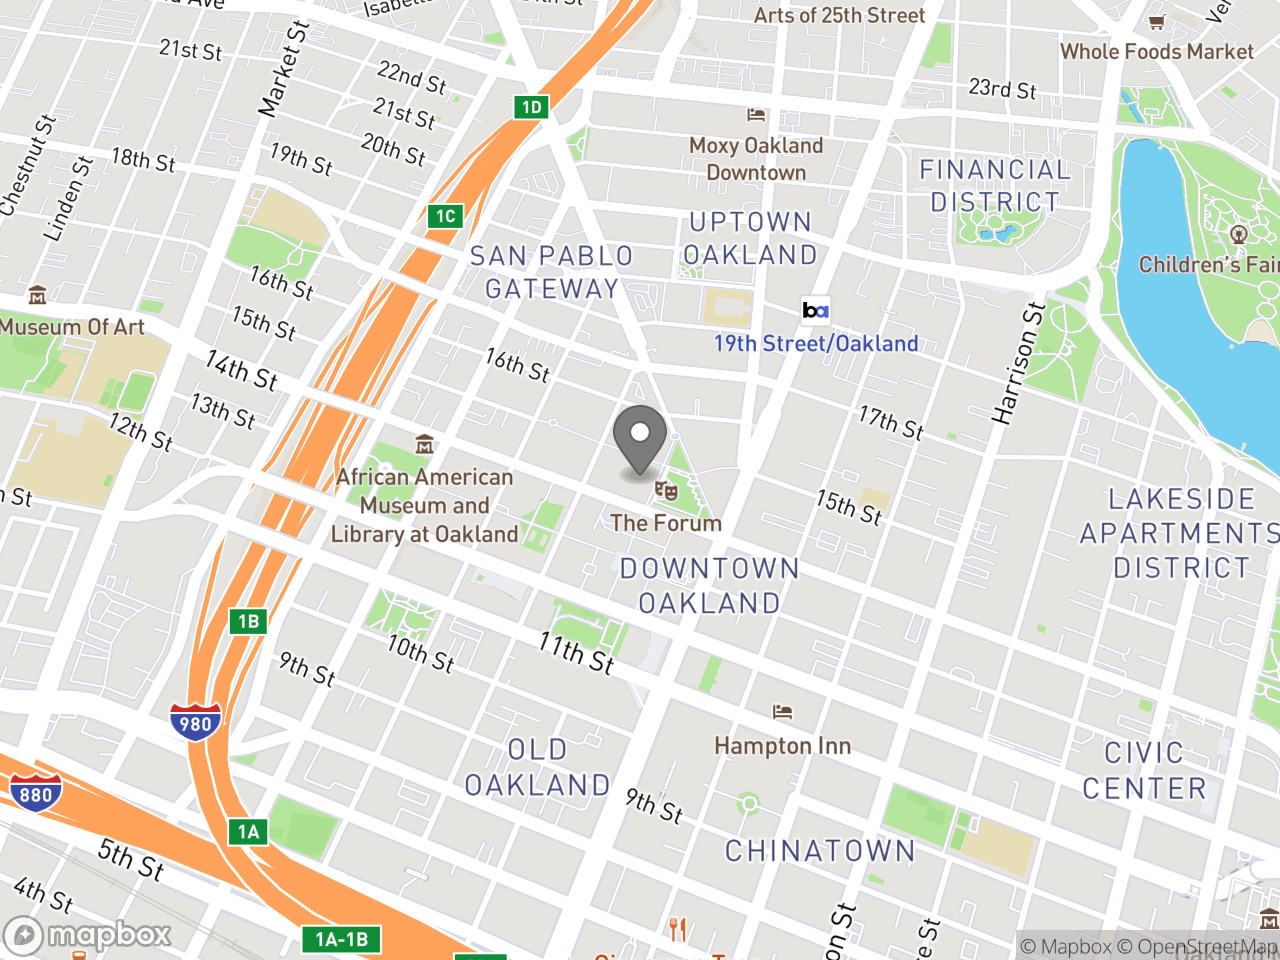 Map location for PAC Jan. 3rd Meeting, located at 1 Frank H. Ogawa Plaza in Oakland, CA 94612